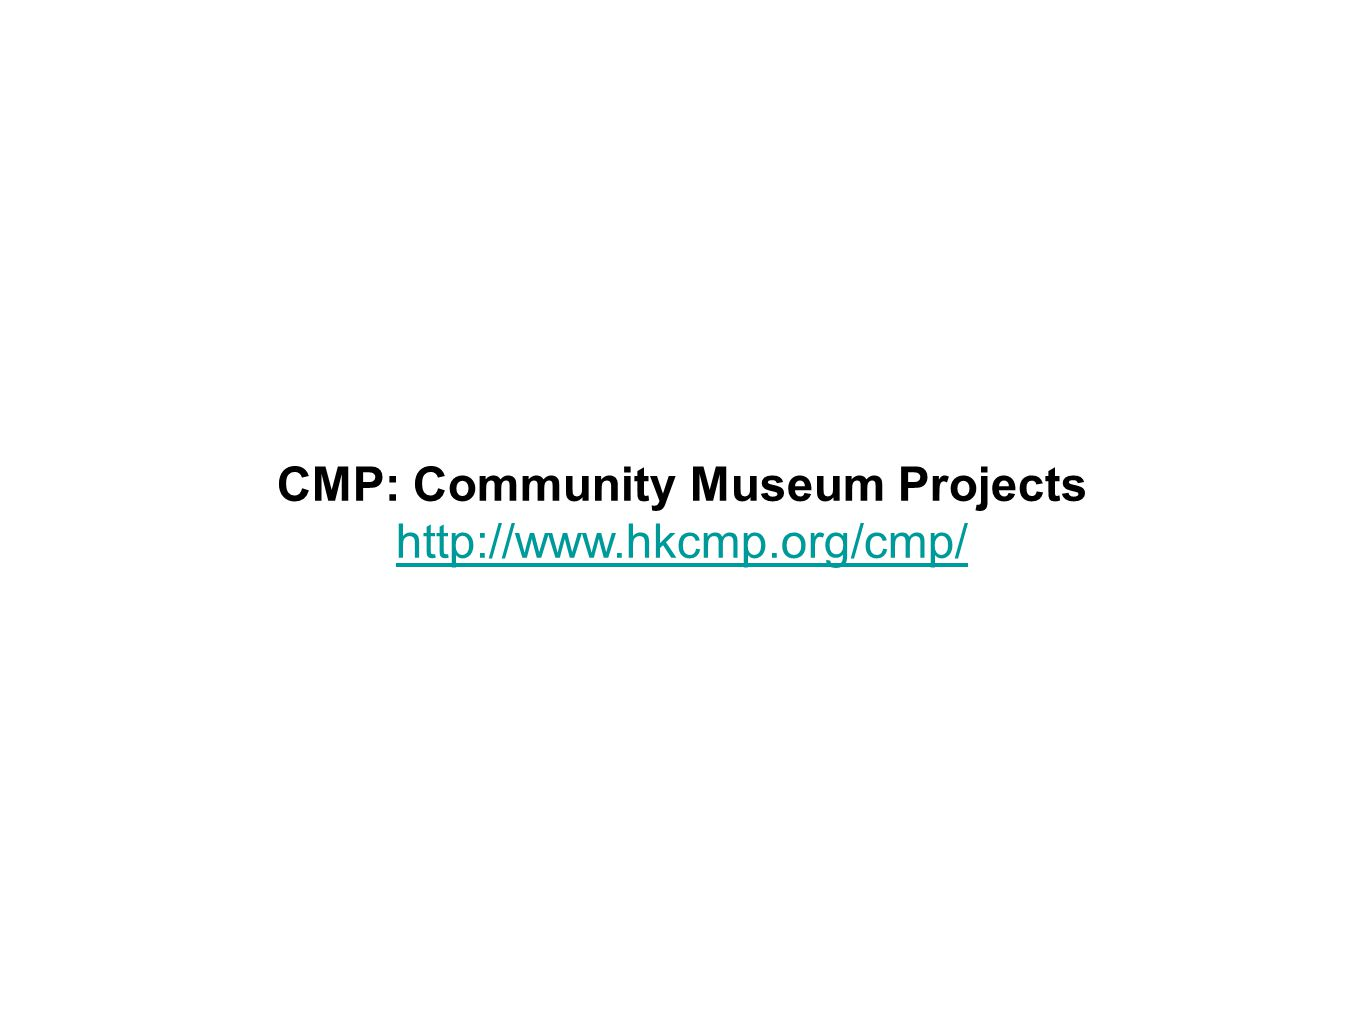 CMP: Community Museum Projects http://www.hkcmp.org/cmp/